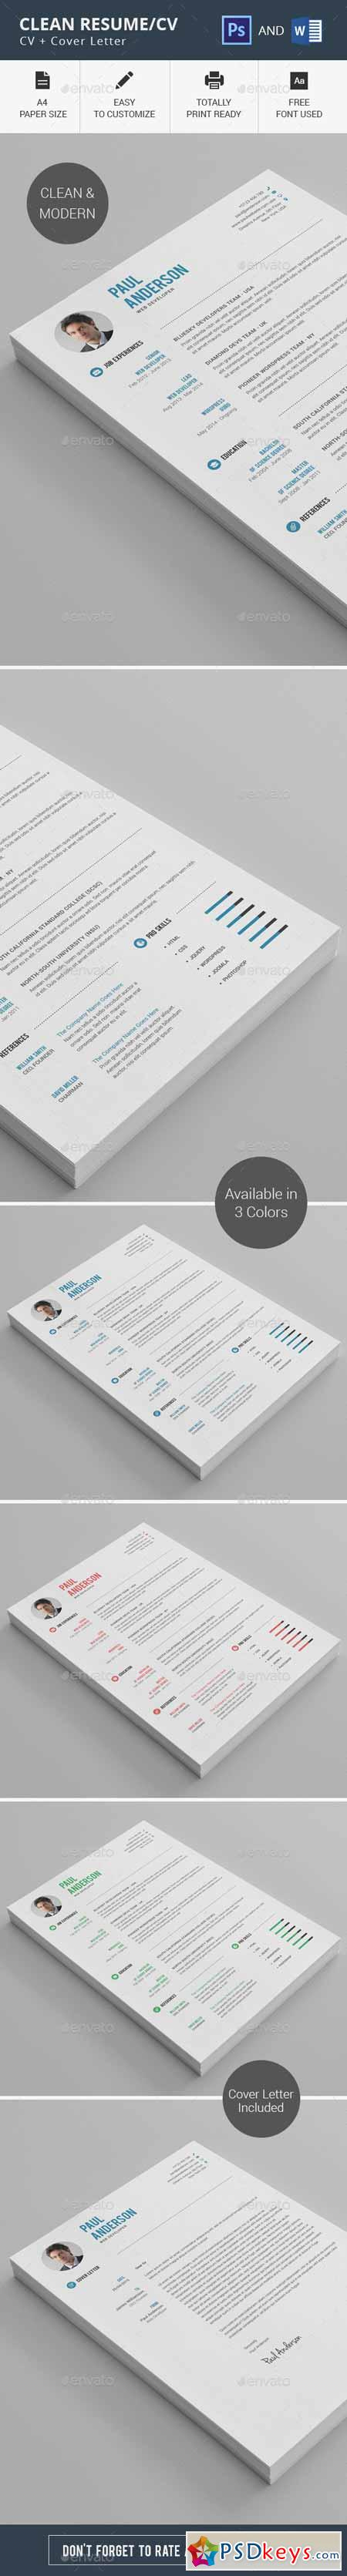 clean resume cv 11274948  u00bb free download photoshop vector stock image via torrent zippyshare